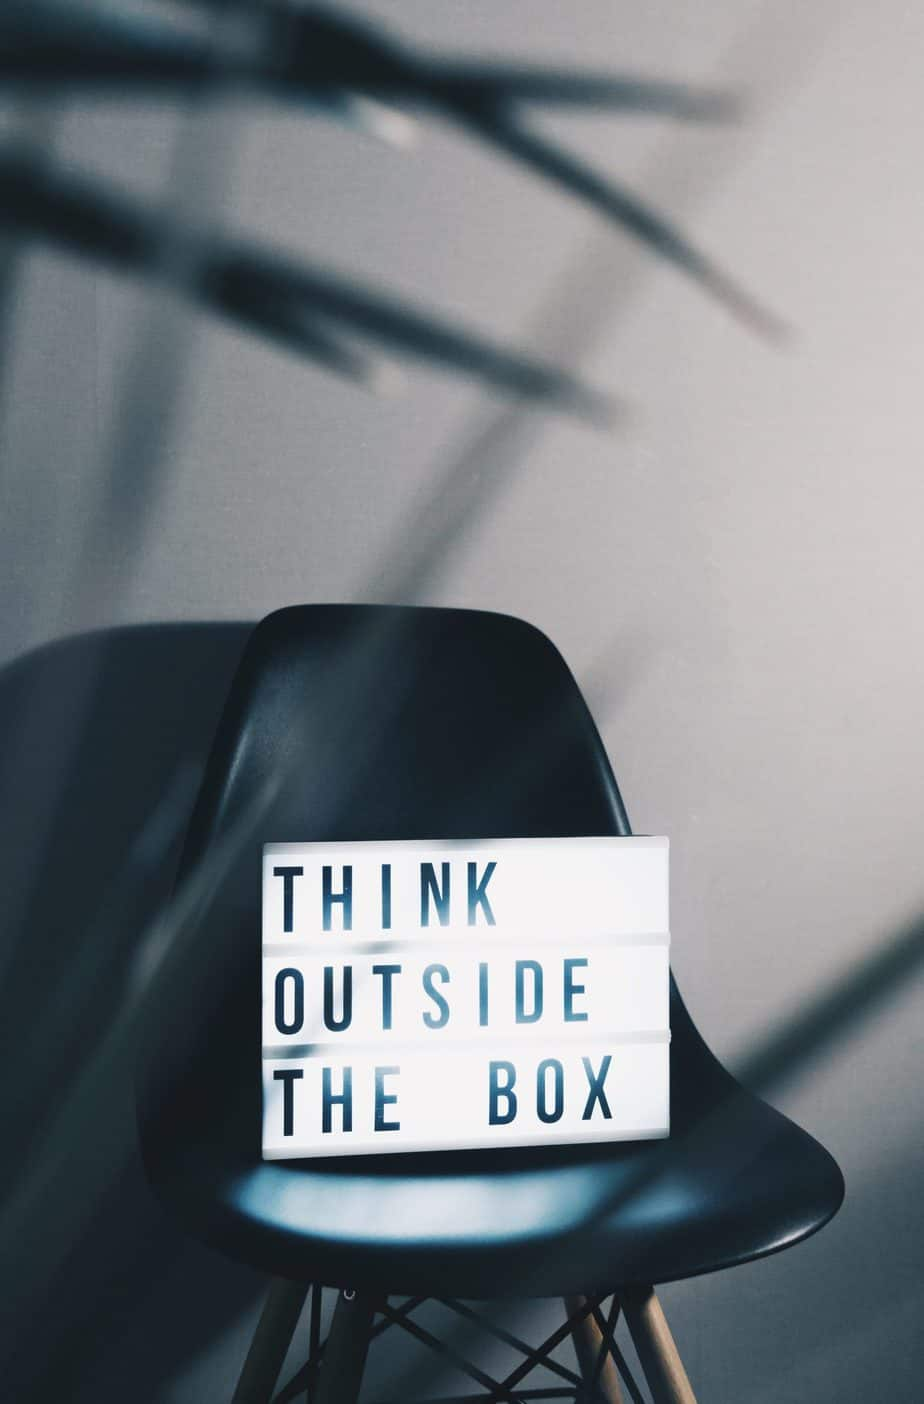 Think outside the box, and make your customer compete for you instead